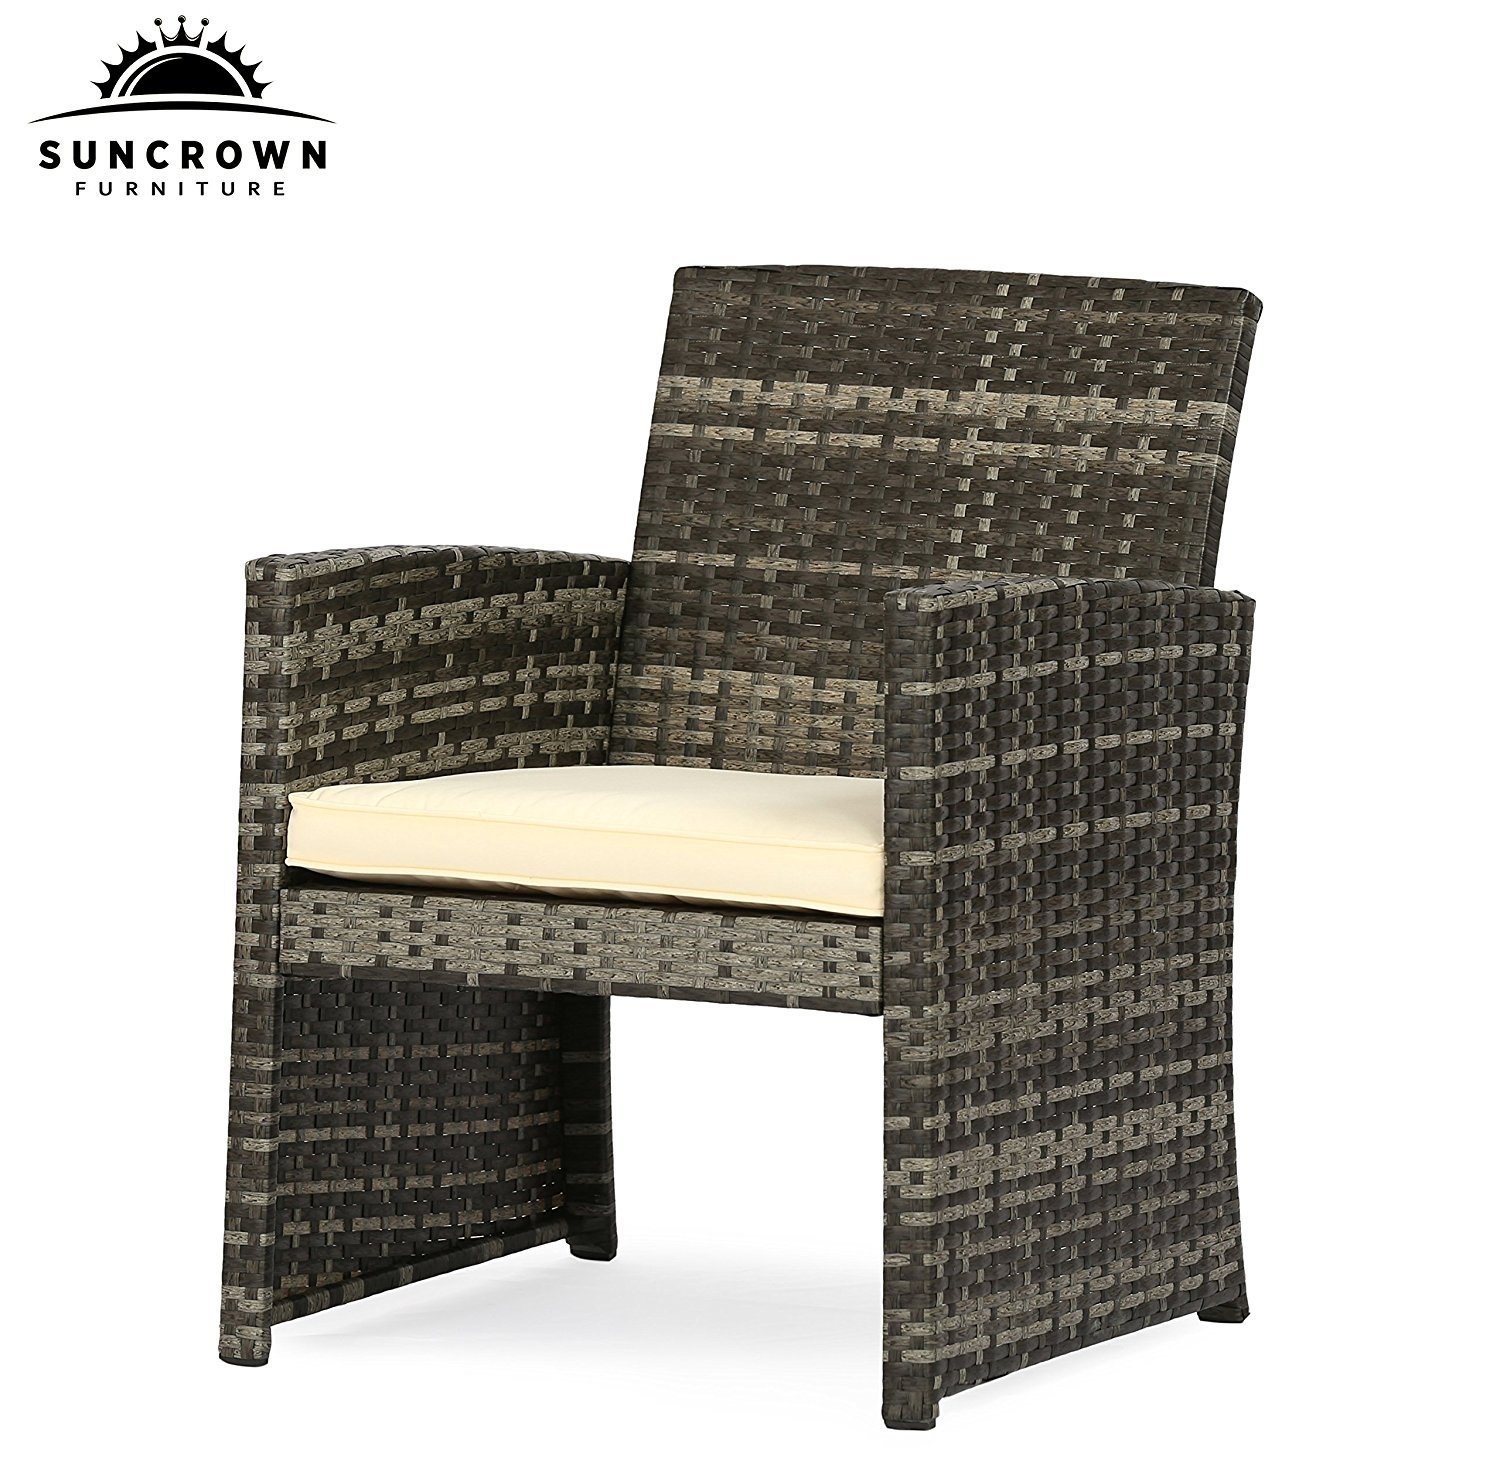 Suncrown Outdoor Furniture Grey Wicker Conversation Set with Glass Top Table (4-Piece Set) All-Weather | Thick, Durable Cushions with Washable Covers | Porch, Backyard, Pool or Garden by Suncrown (Image #3)